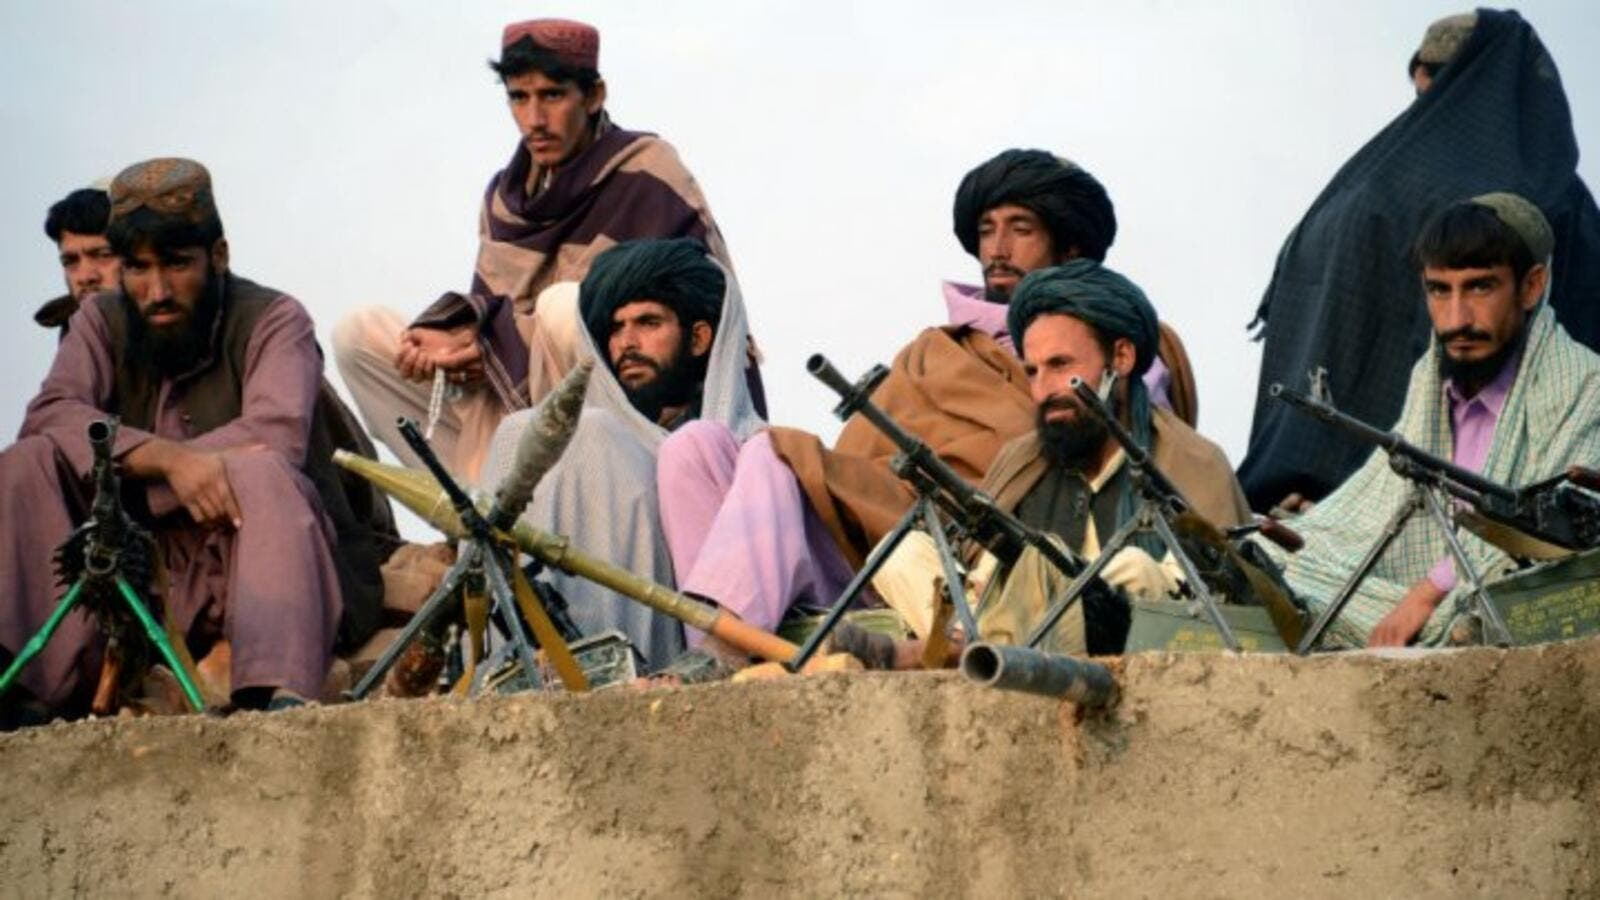 Taliban members agree to a ceasefire with Afghan government till the end of Eid-ul-Fitr festivities. (AFP/ File Photo)